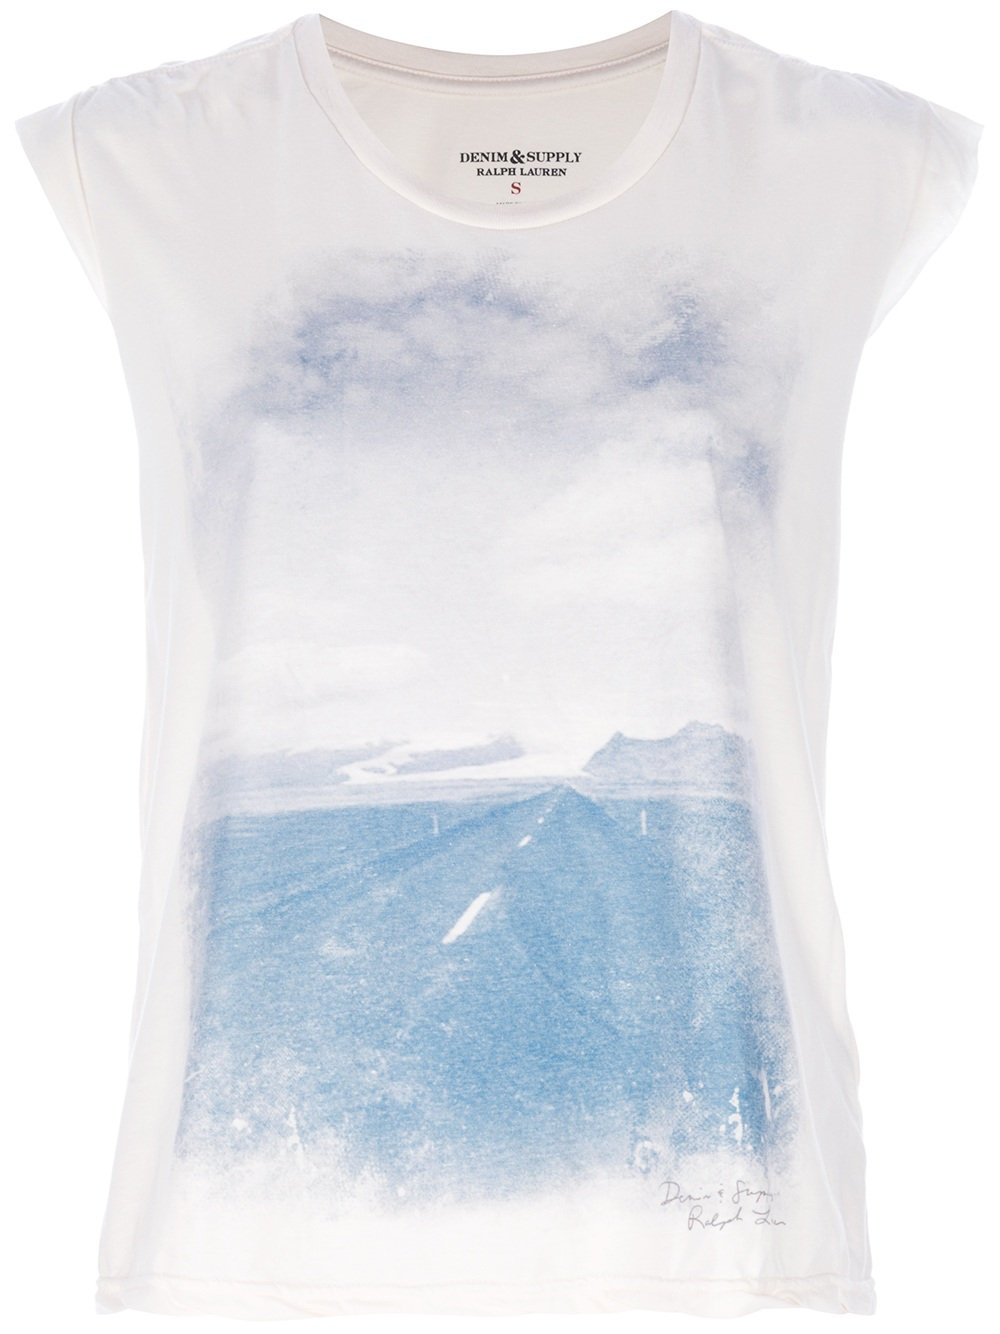 Ralph Lauren Denim & Supply Printed T-Shirt - Penelope - farfetch.com_files.jpg